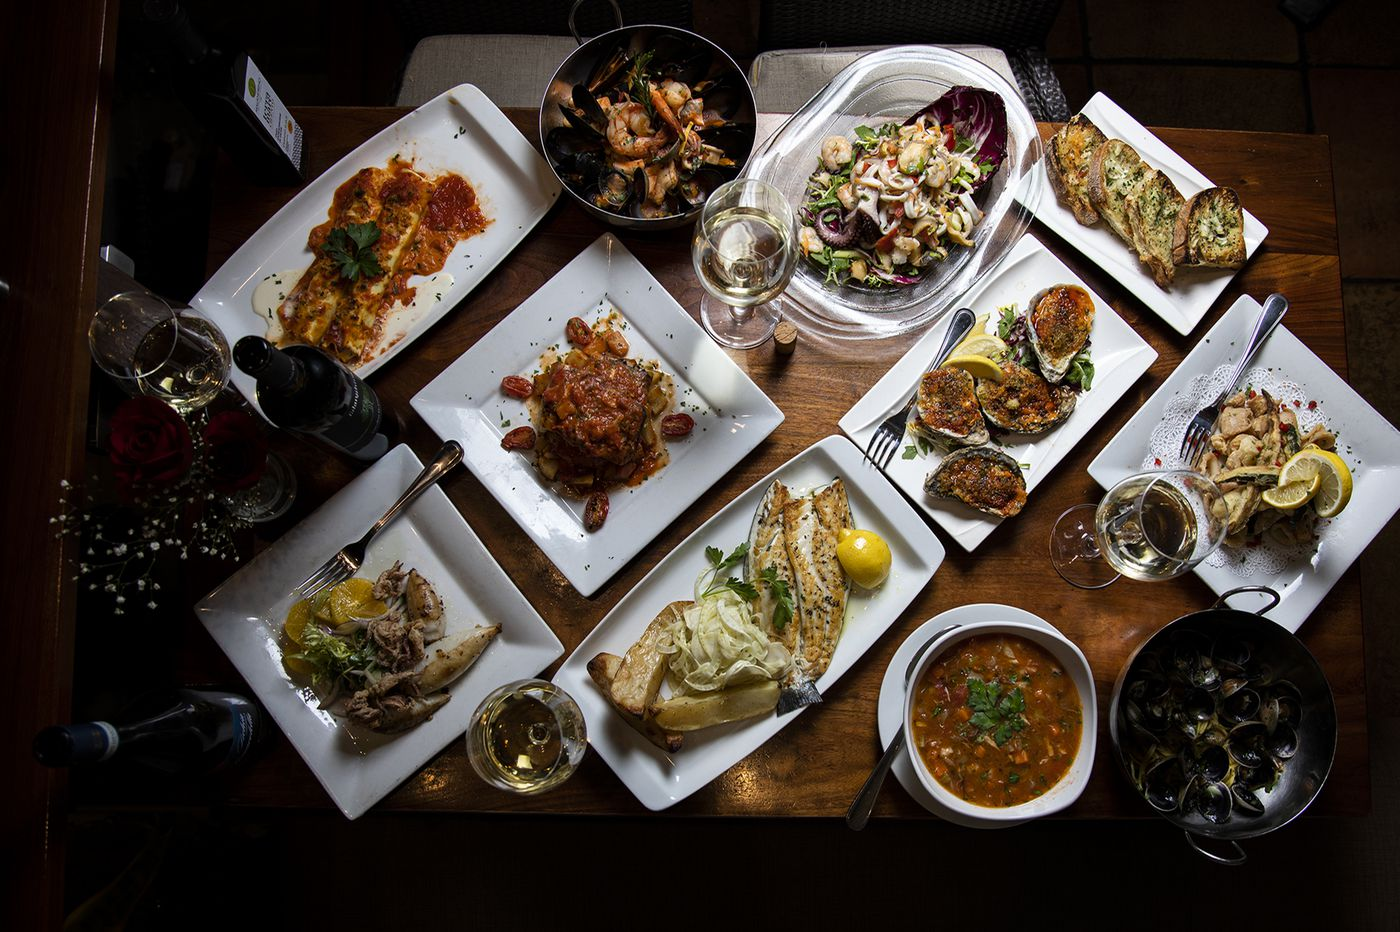 The Feast of the 7 Fishes is Philly tradition. Here are 7 chances to try it.